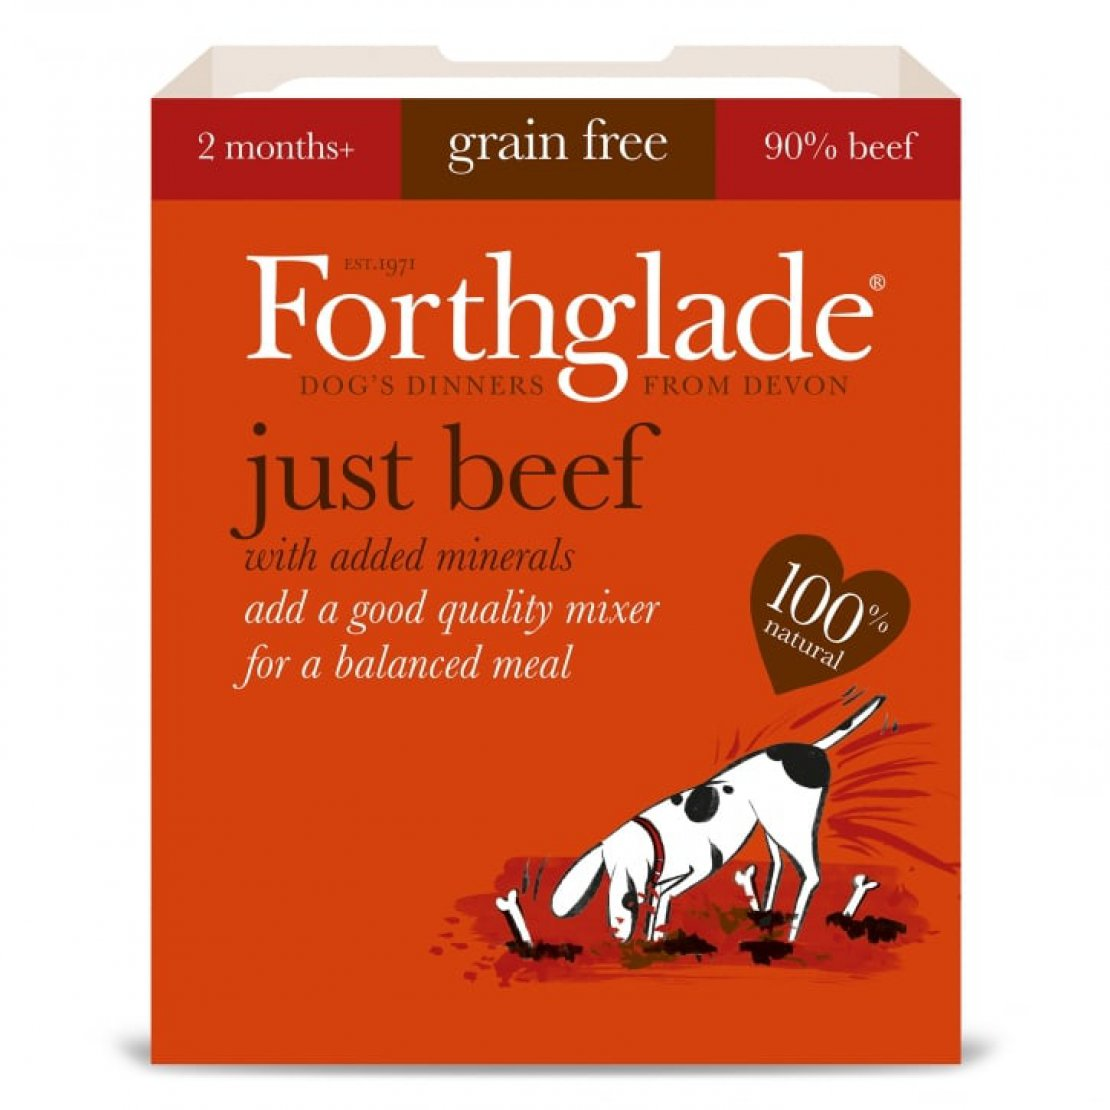 ONLY AVAILABLE FOR LOCAL DELIVERY. Forthglade Just Dog Food. Beef Tray. 18pk